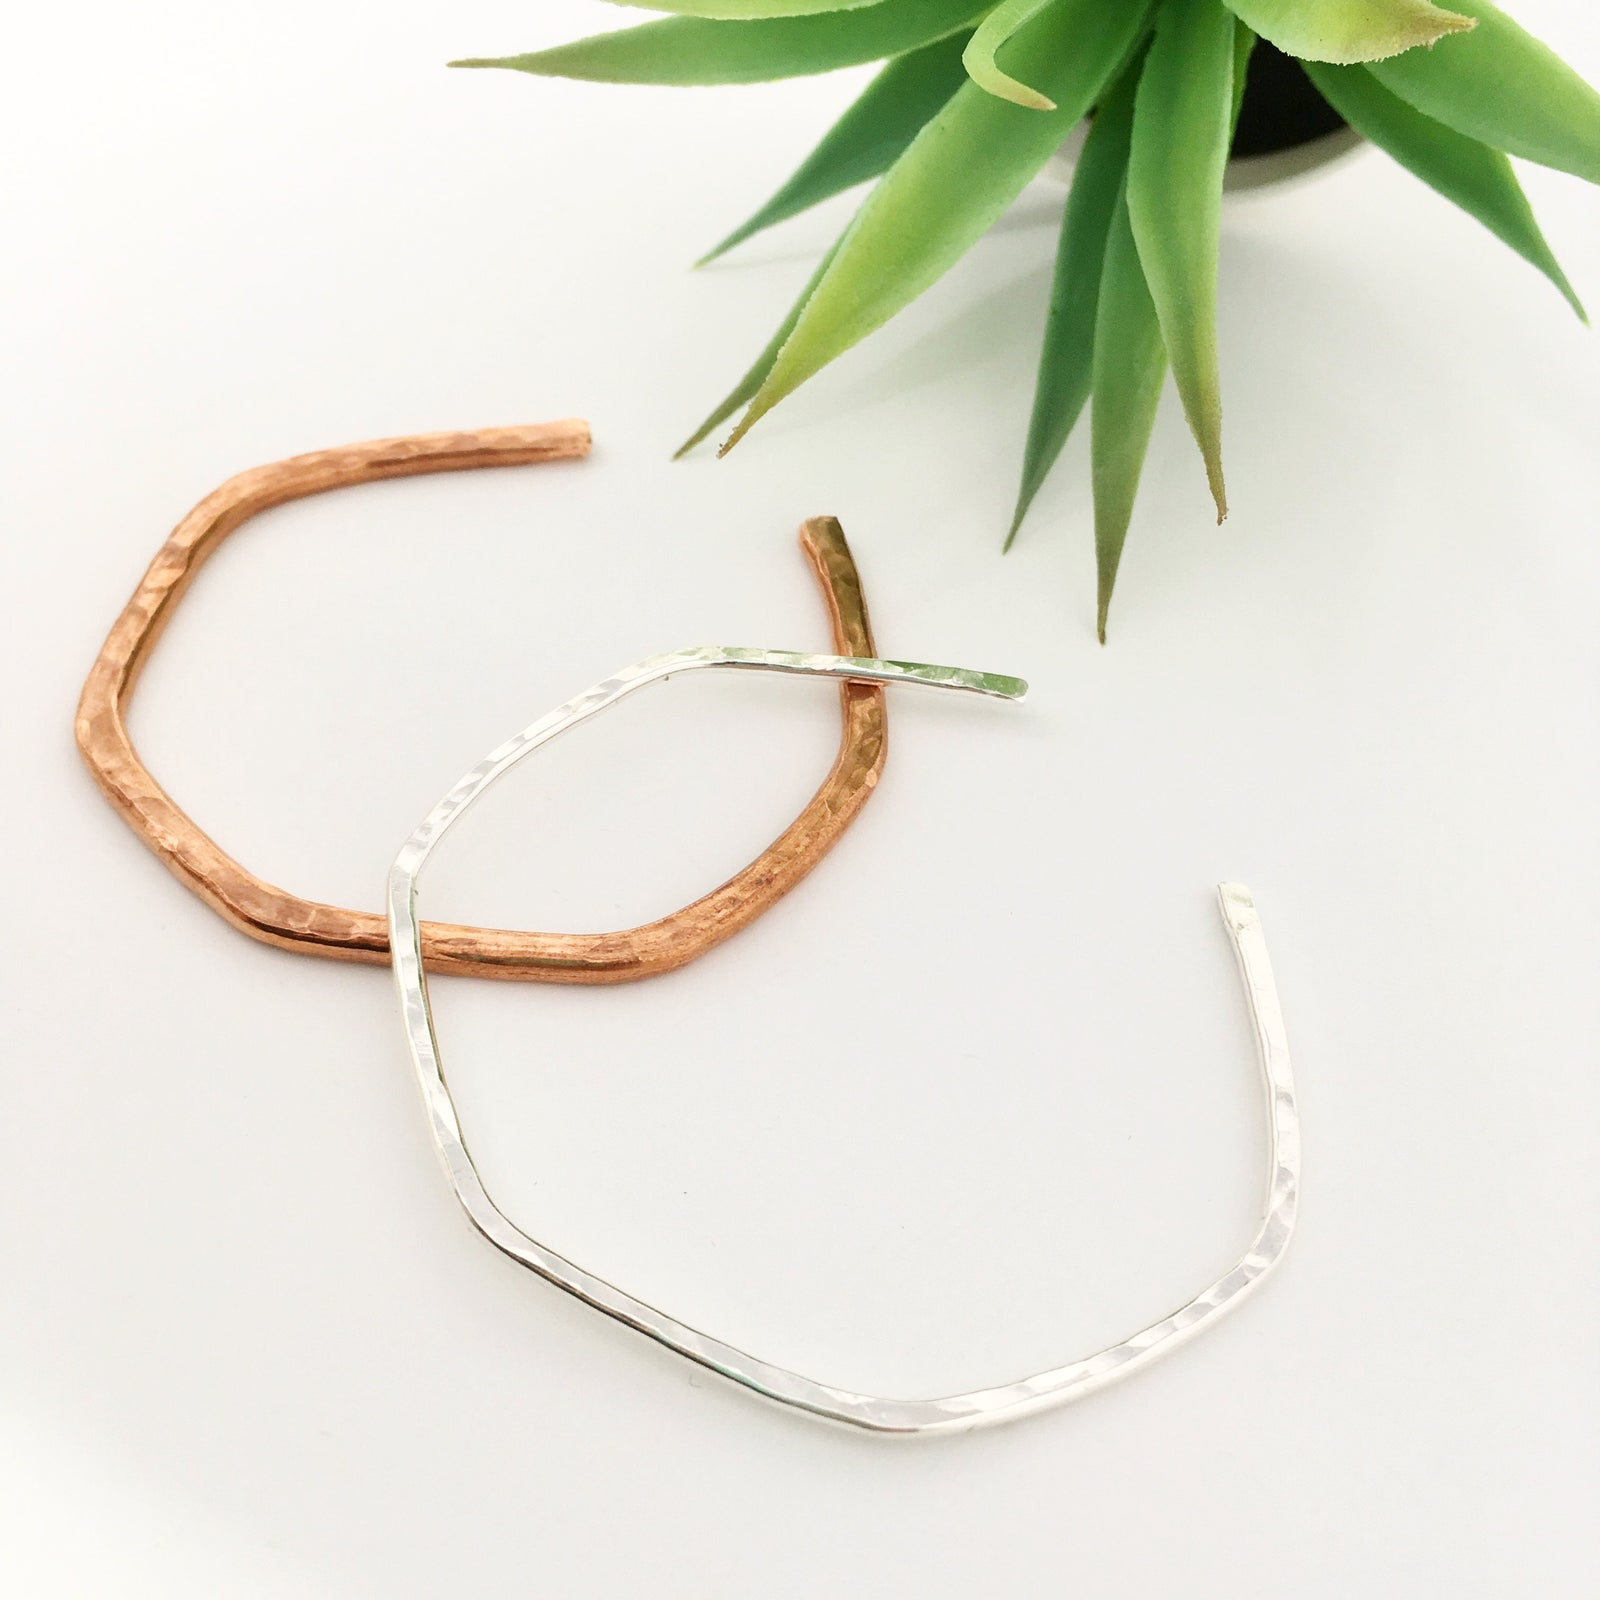 IMPRESSIONS HAMMERED THIN BRACELETS | COLOR OPTIONS